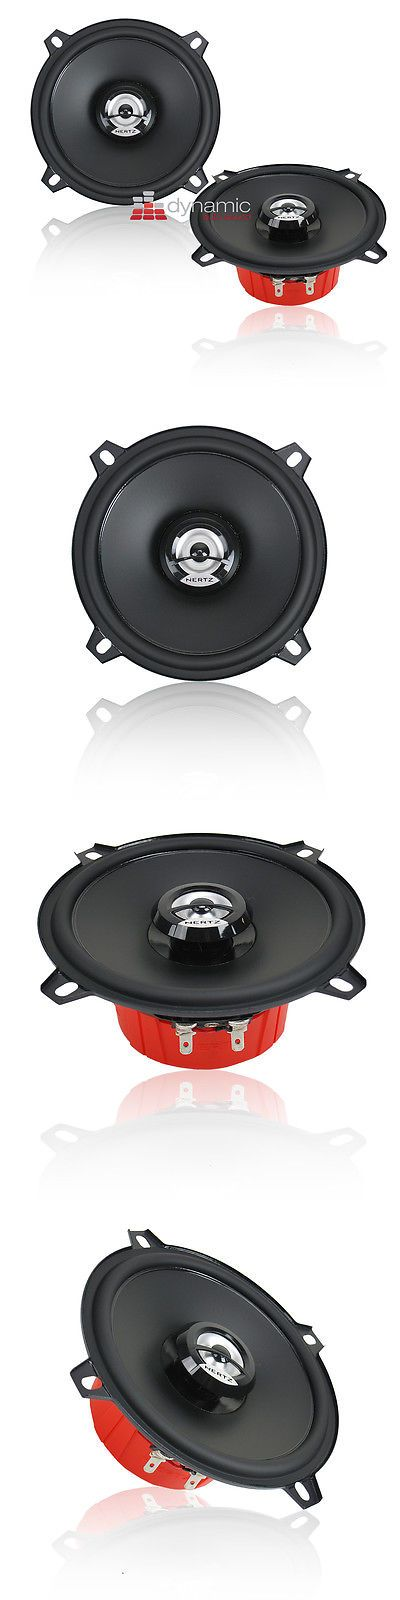 Car Speakers and Speaker Systems: Hertz Dcx 130.3 5 1/4 Dieci Series 2-Way Car Audio Coaxial Speakers New -> BUY IT NOW ONLY: $79.95 on eBay!